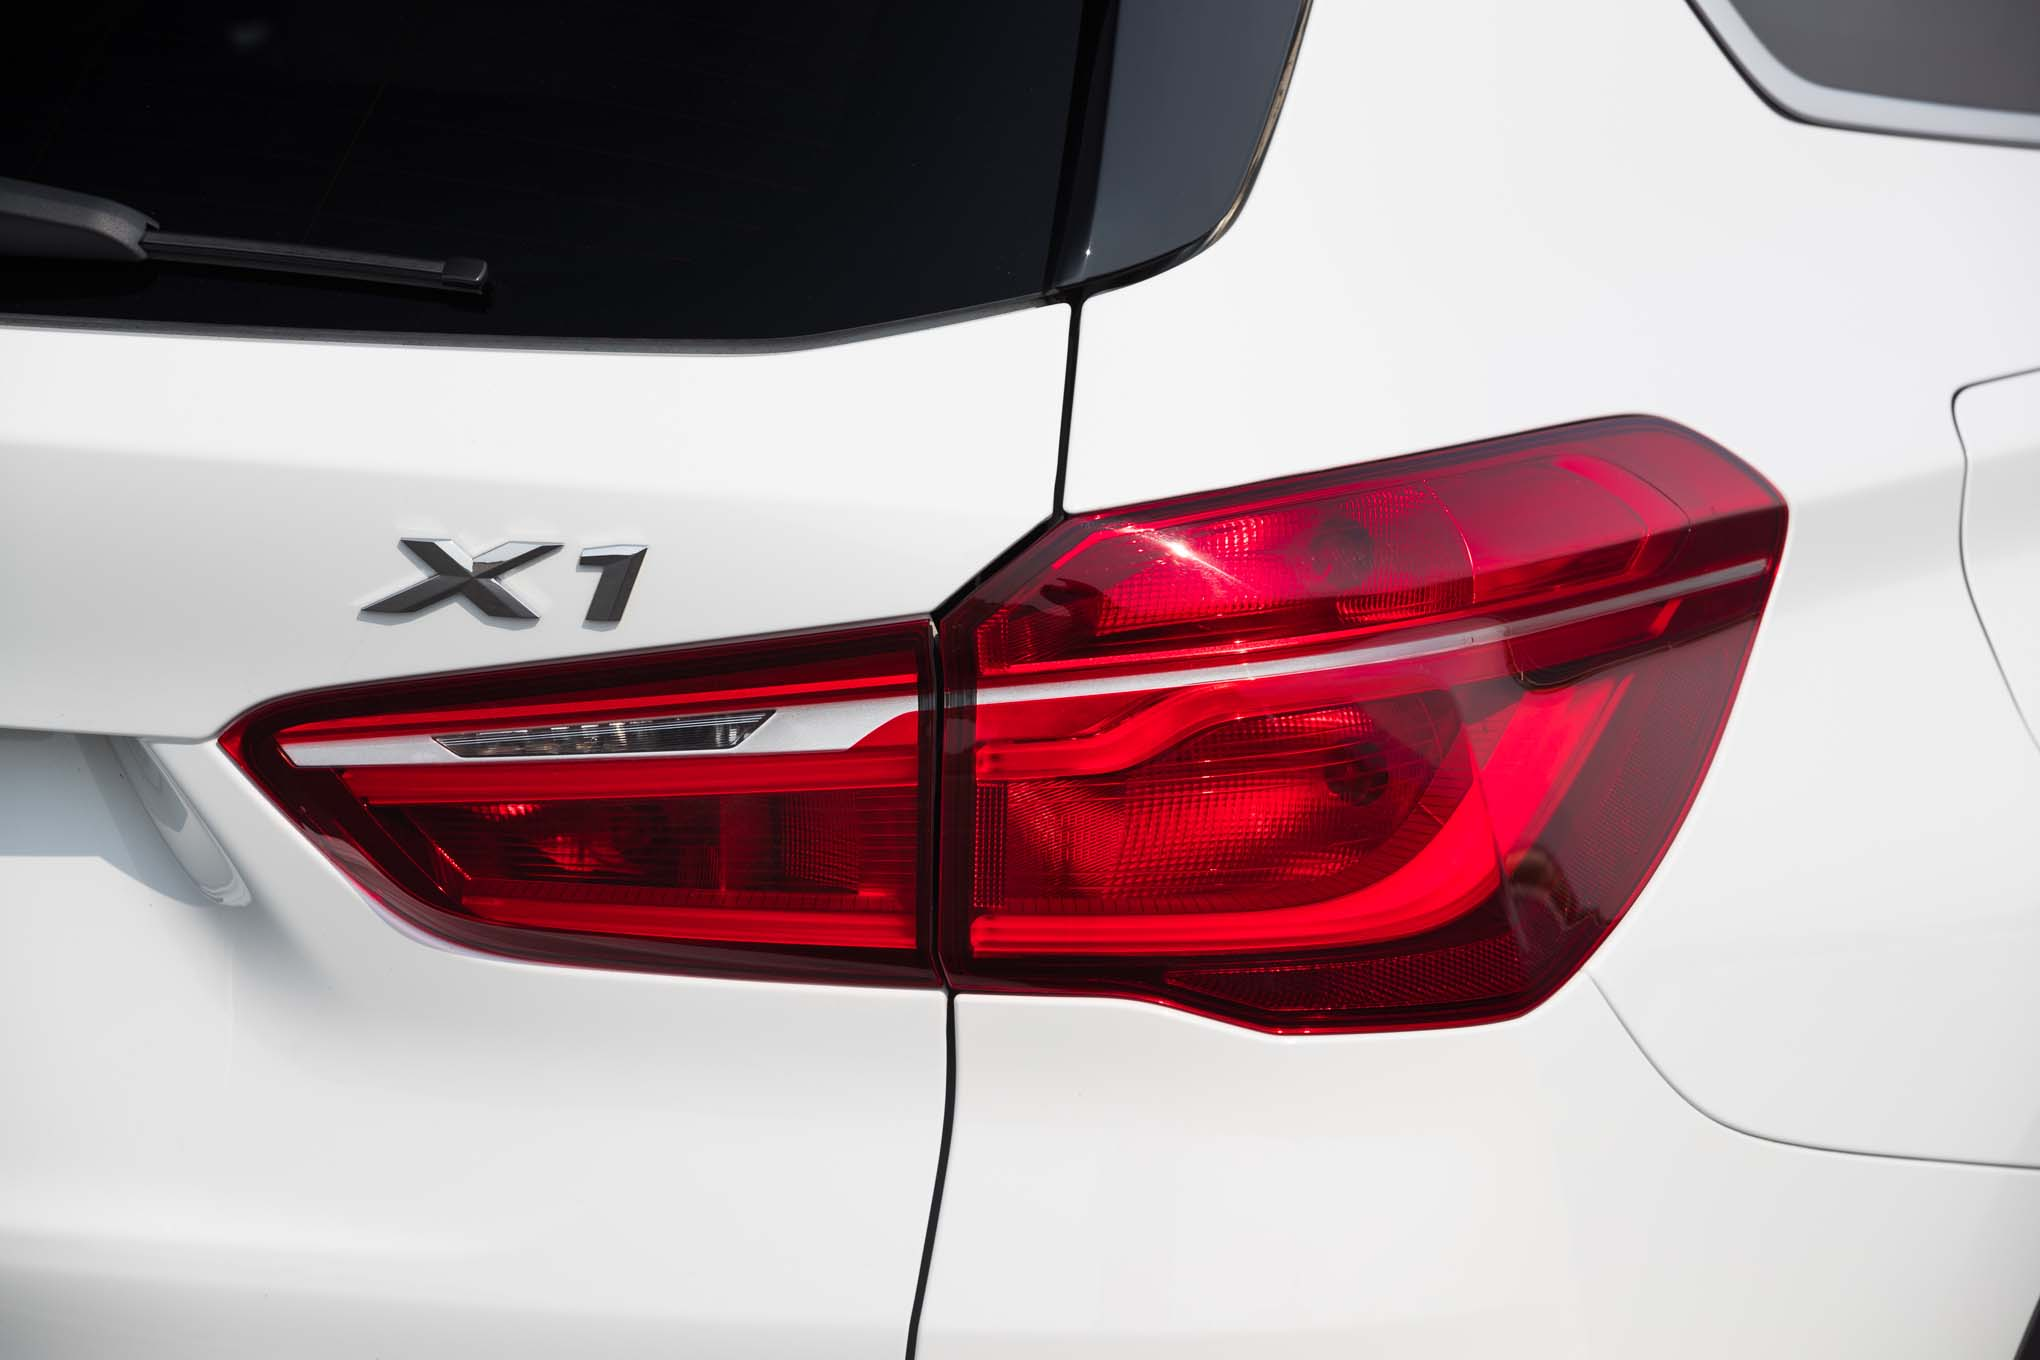 2017 BMW X1 XDrive28i Exterior View Taillight (View 21 of 23)